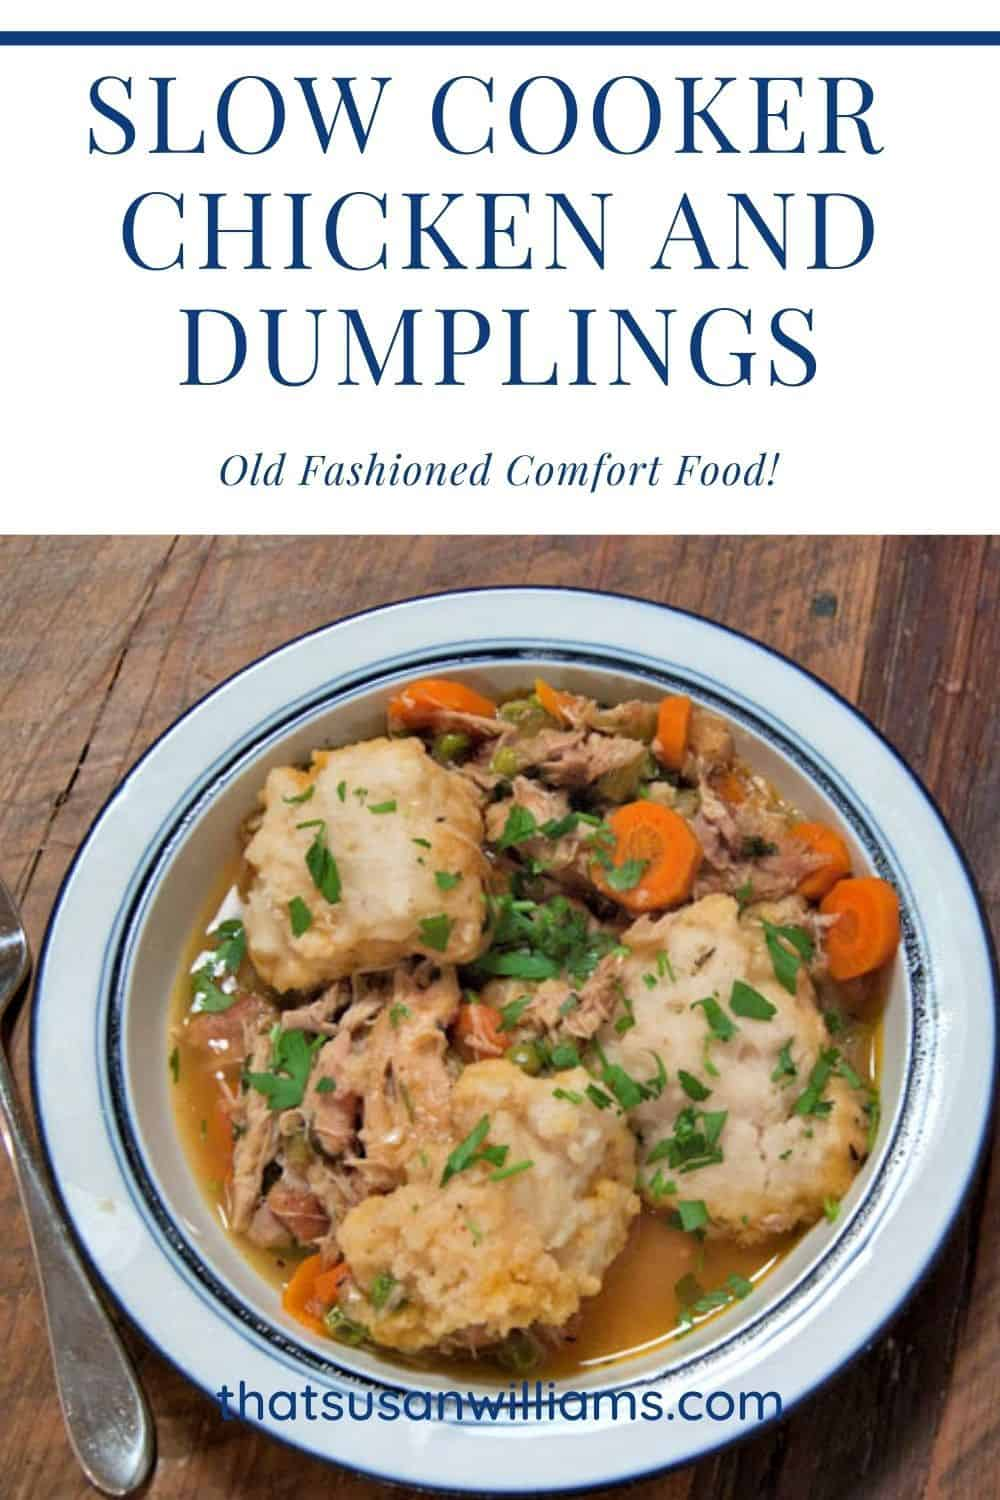 Old Fashioned Slow Cooker Chicken and Dumplings